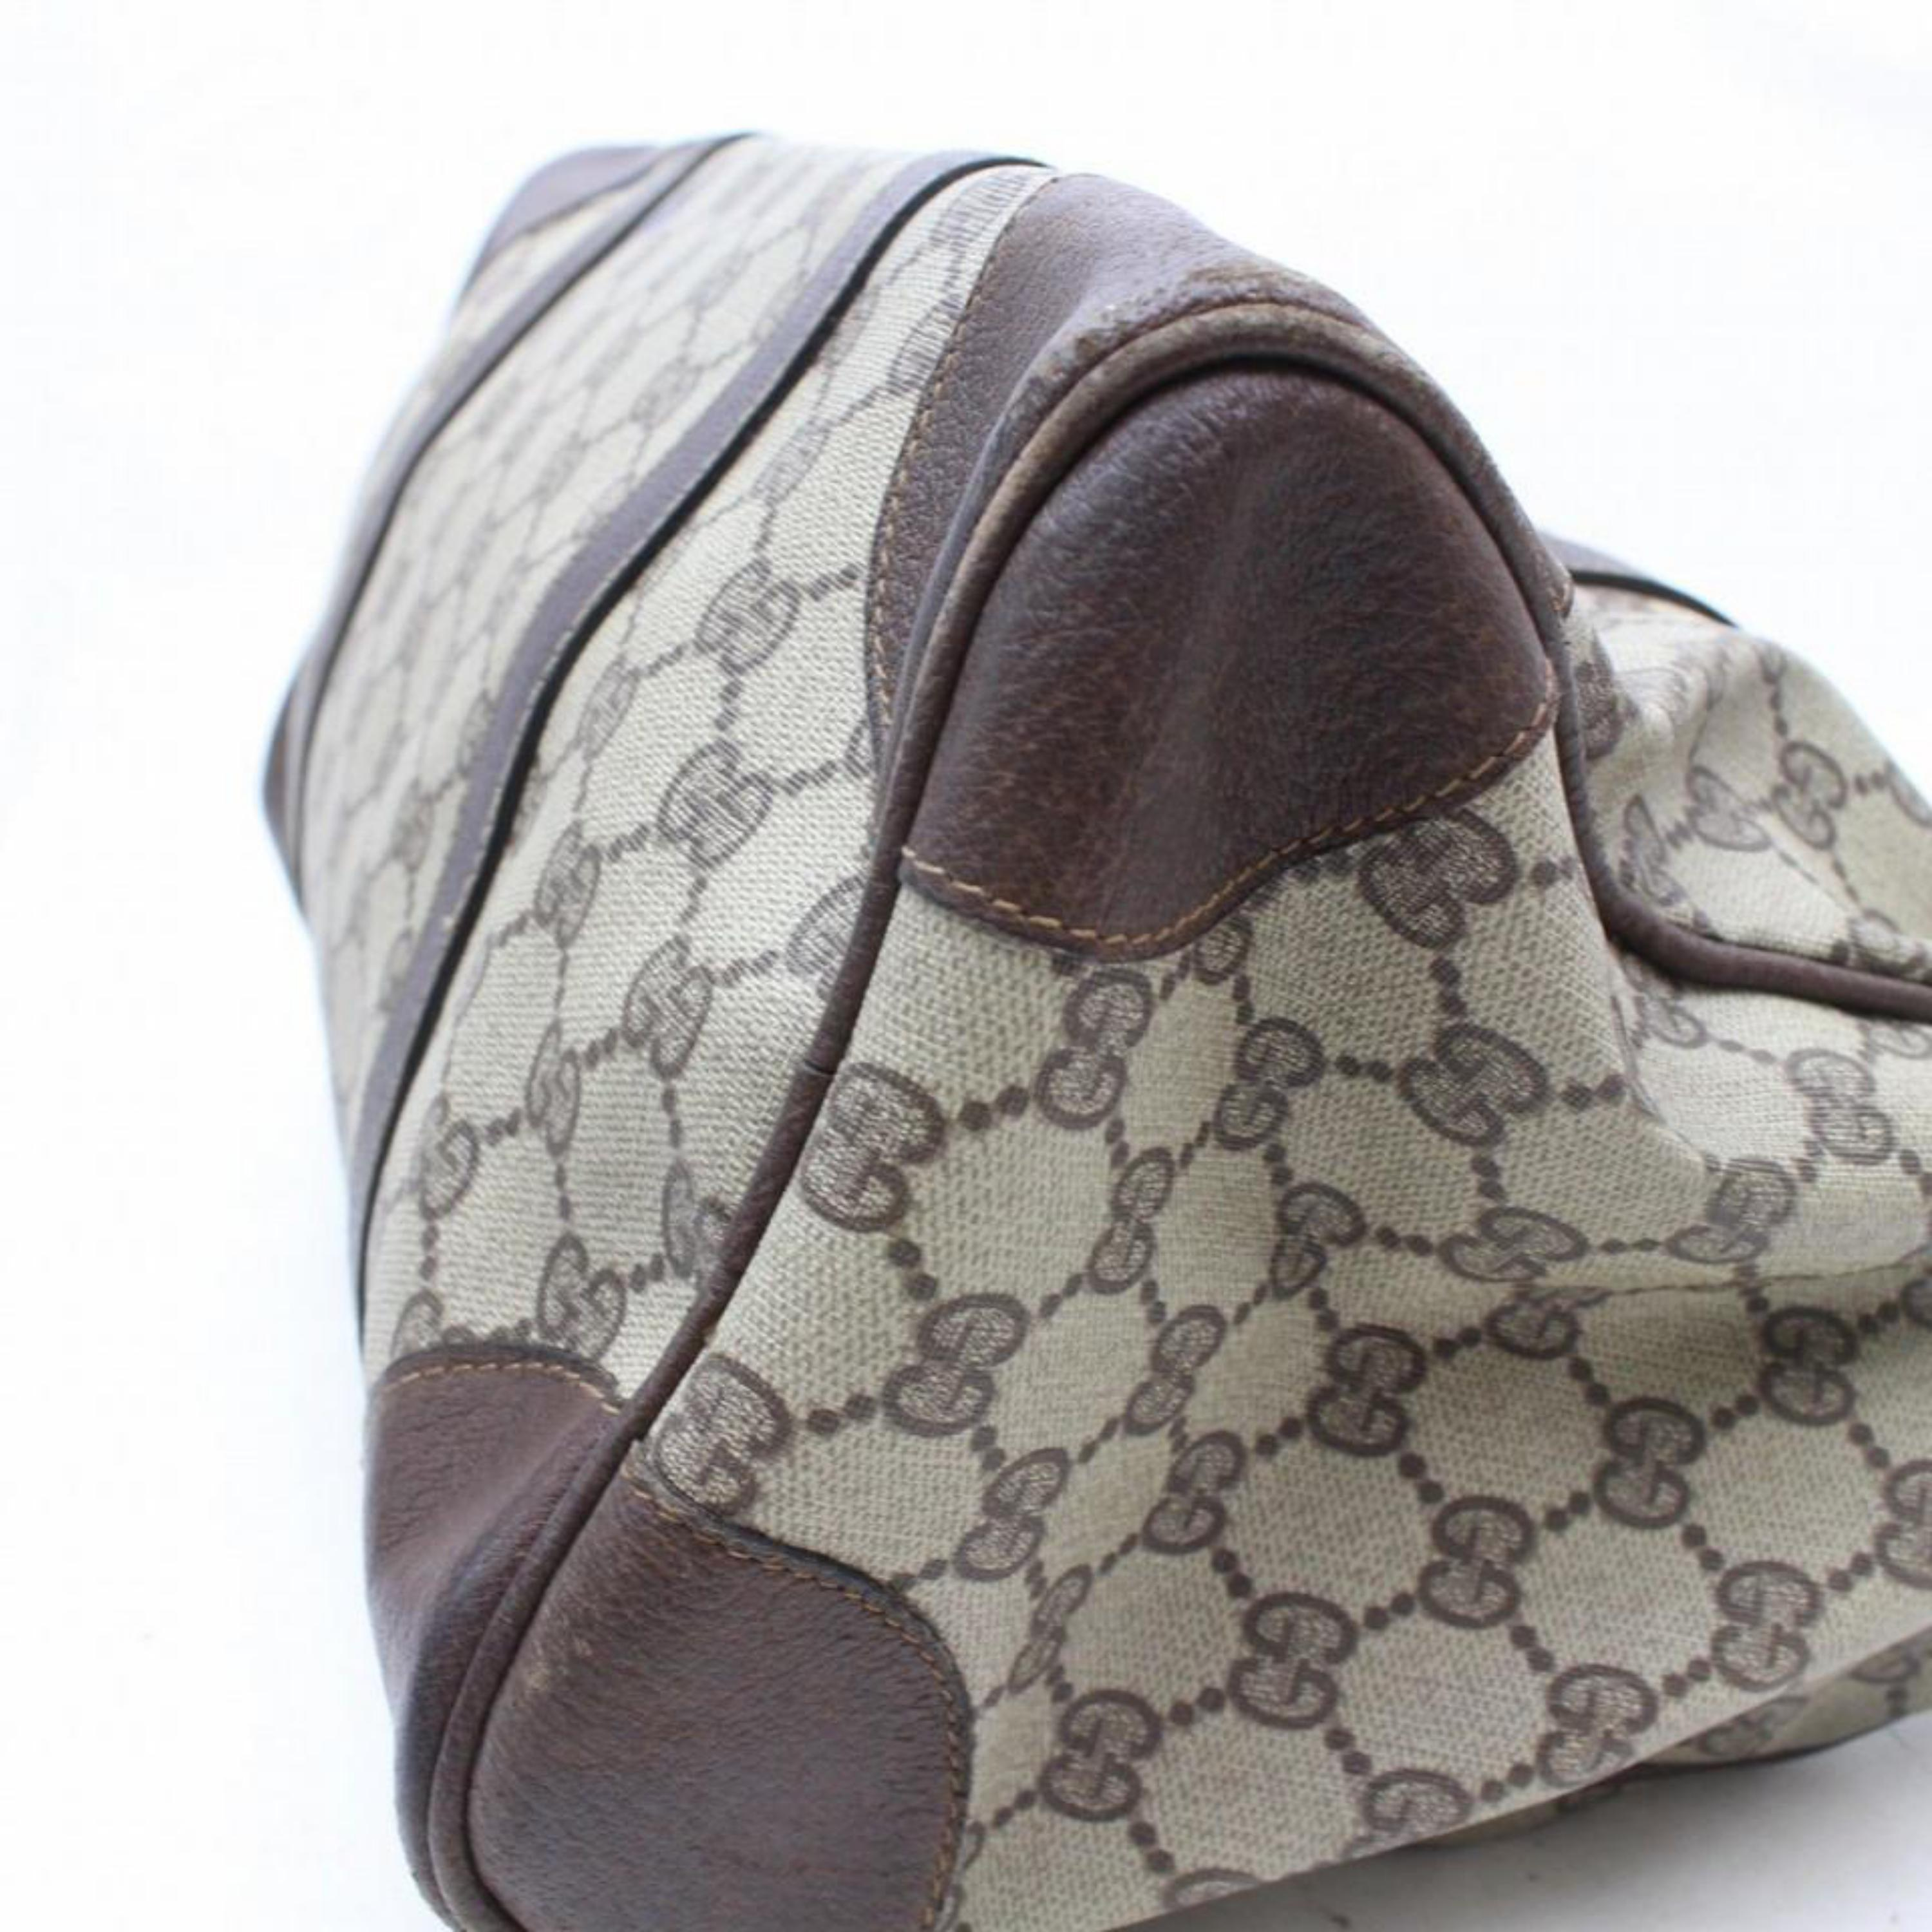 dfcef162a Gucci Boston Supreme Monogram 869237 Brown Coated Canvas Satchel For Sale  at 1stdibs